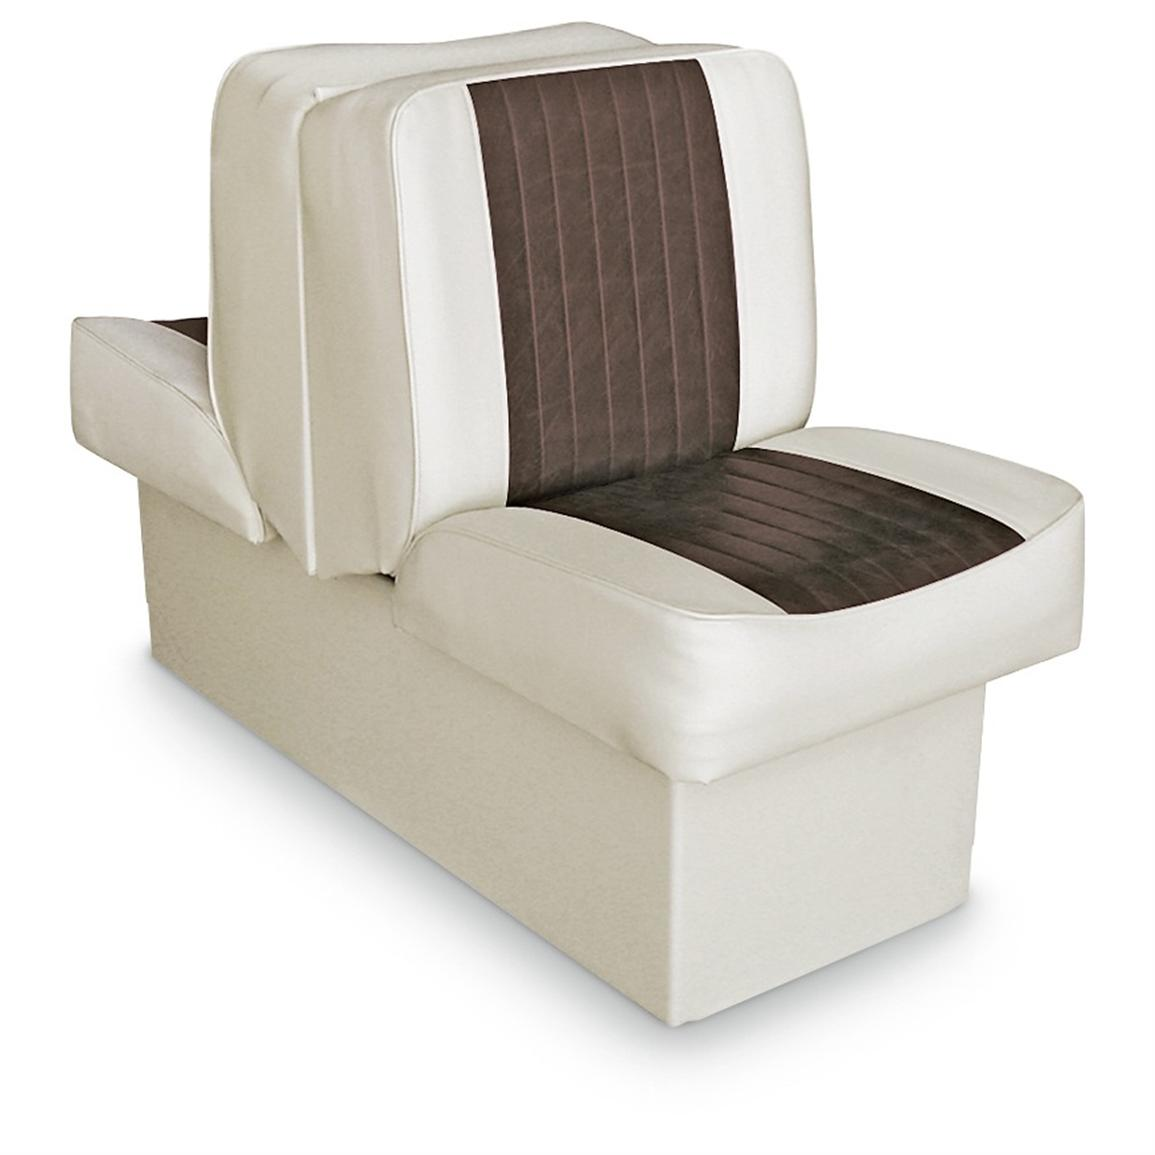 Wise Deluxe Boat Lounge Seat, Sand / Brown